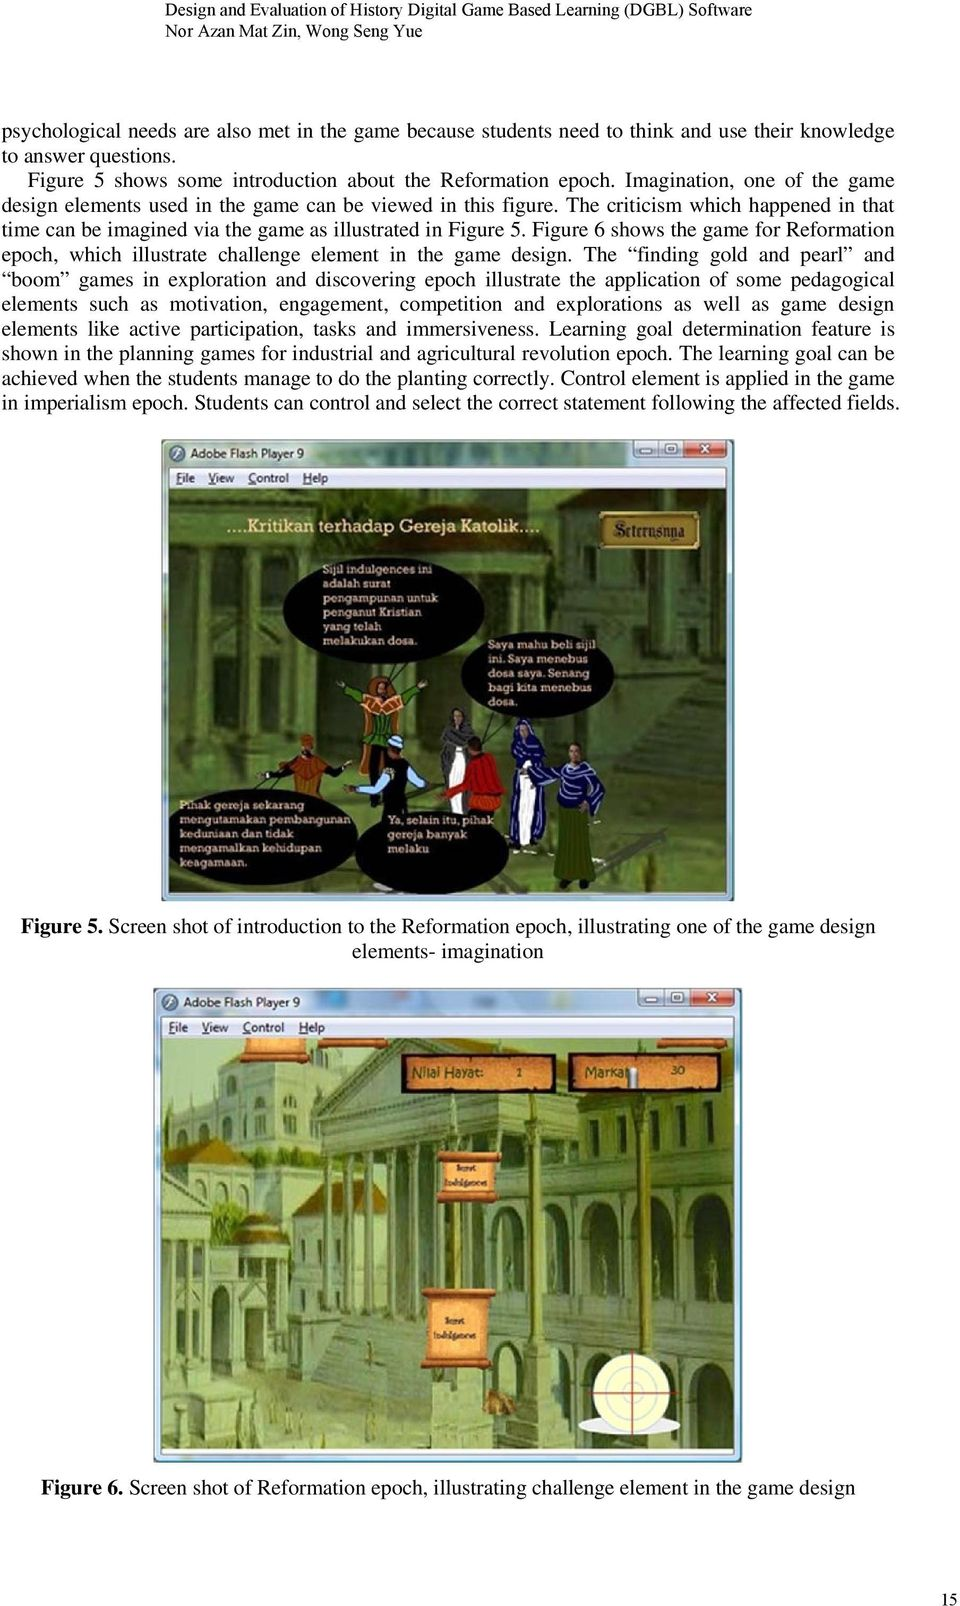 Figure 6 shows the game for Reformation epoch, which illustrate challenge element in the game design.